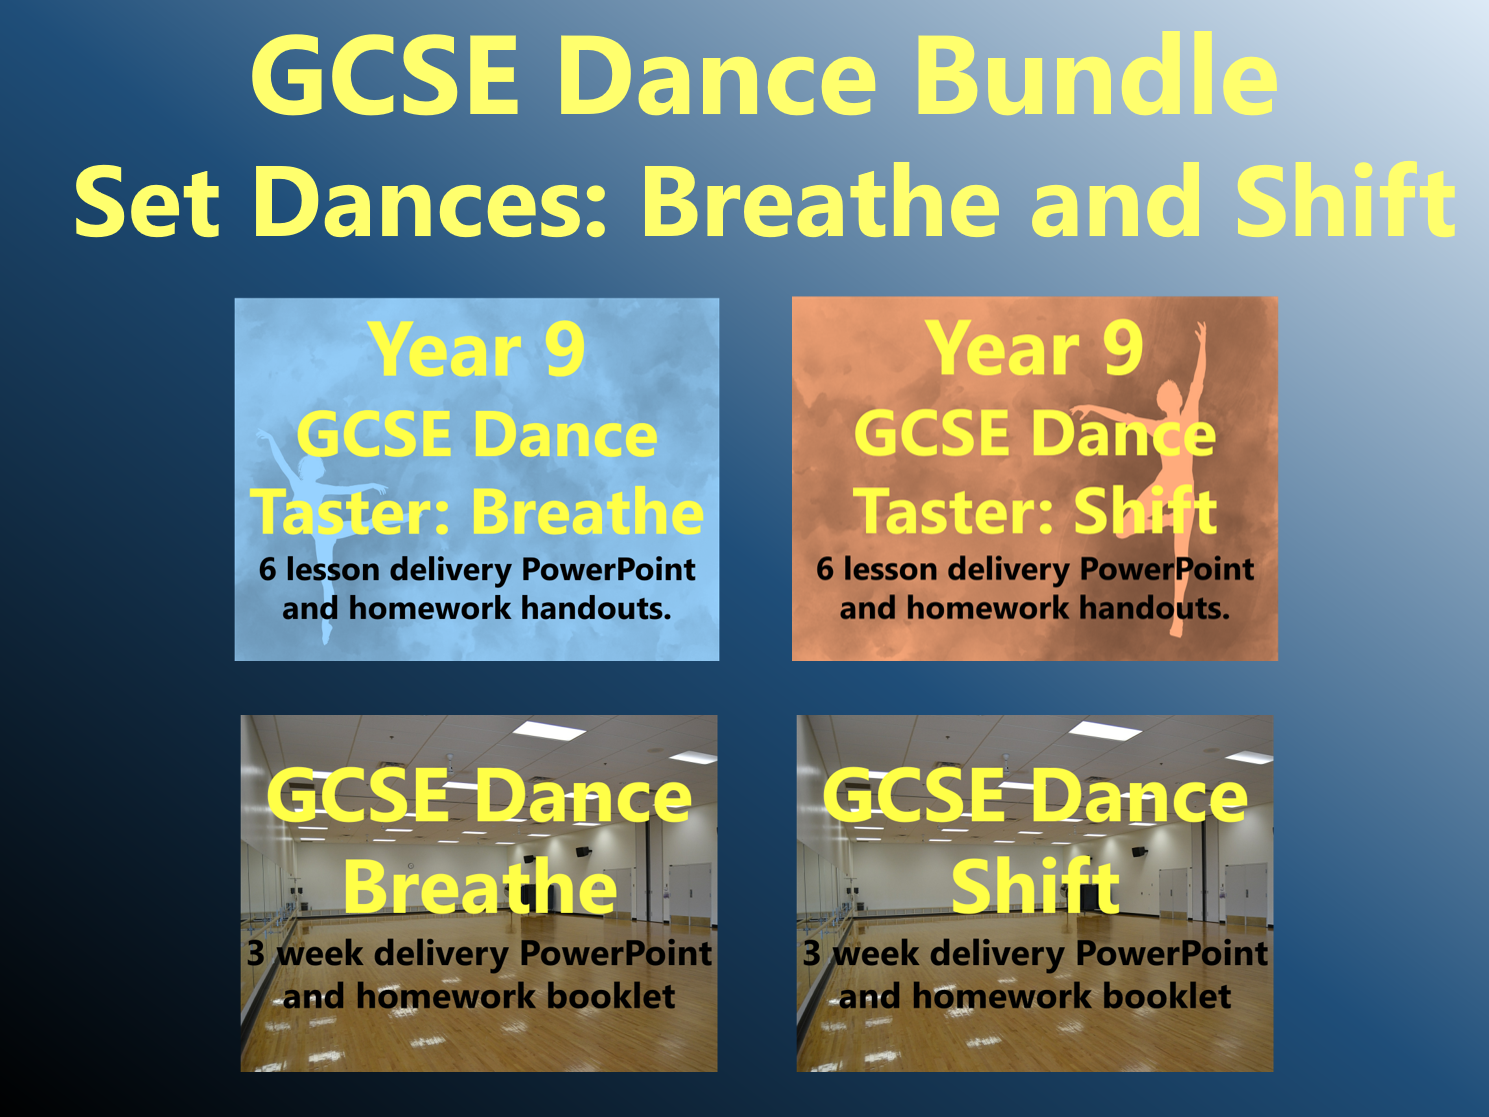 GCSE Dance Bundle - Set Dances: Breathe and Shift